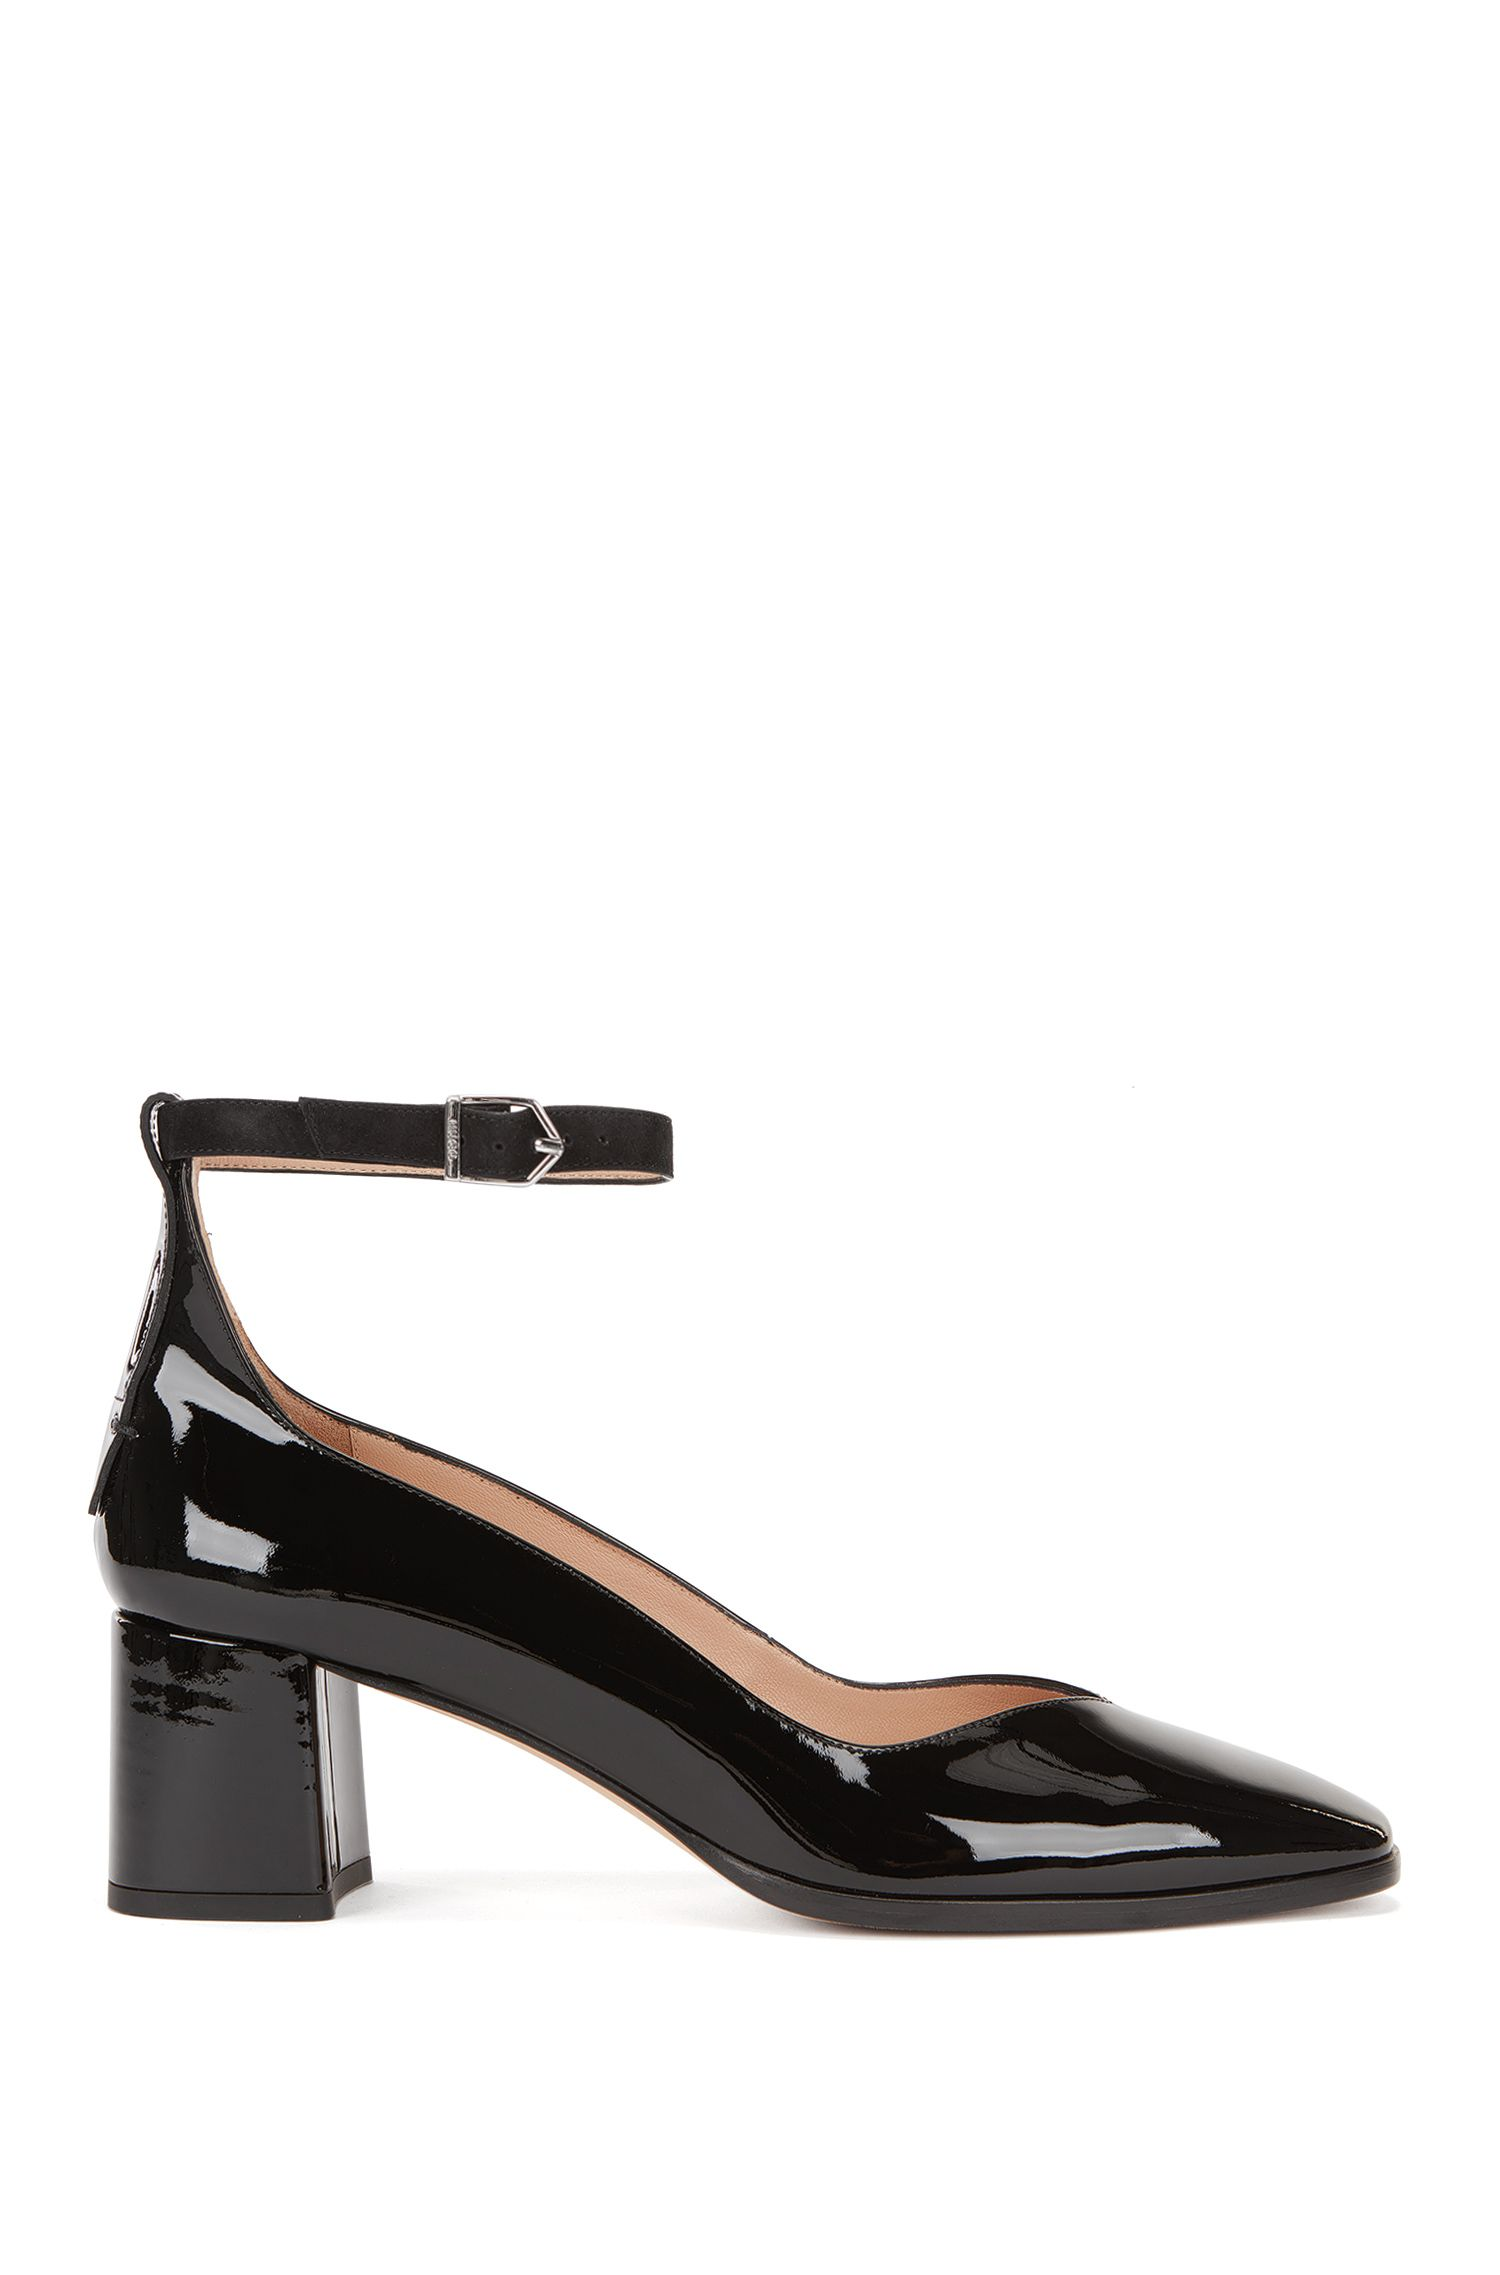 Leather pumps with ankle strap